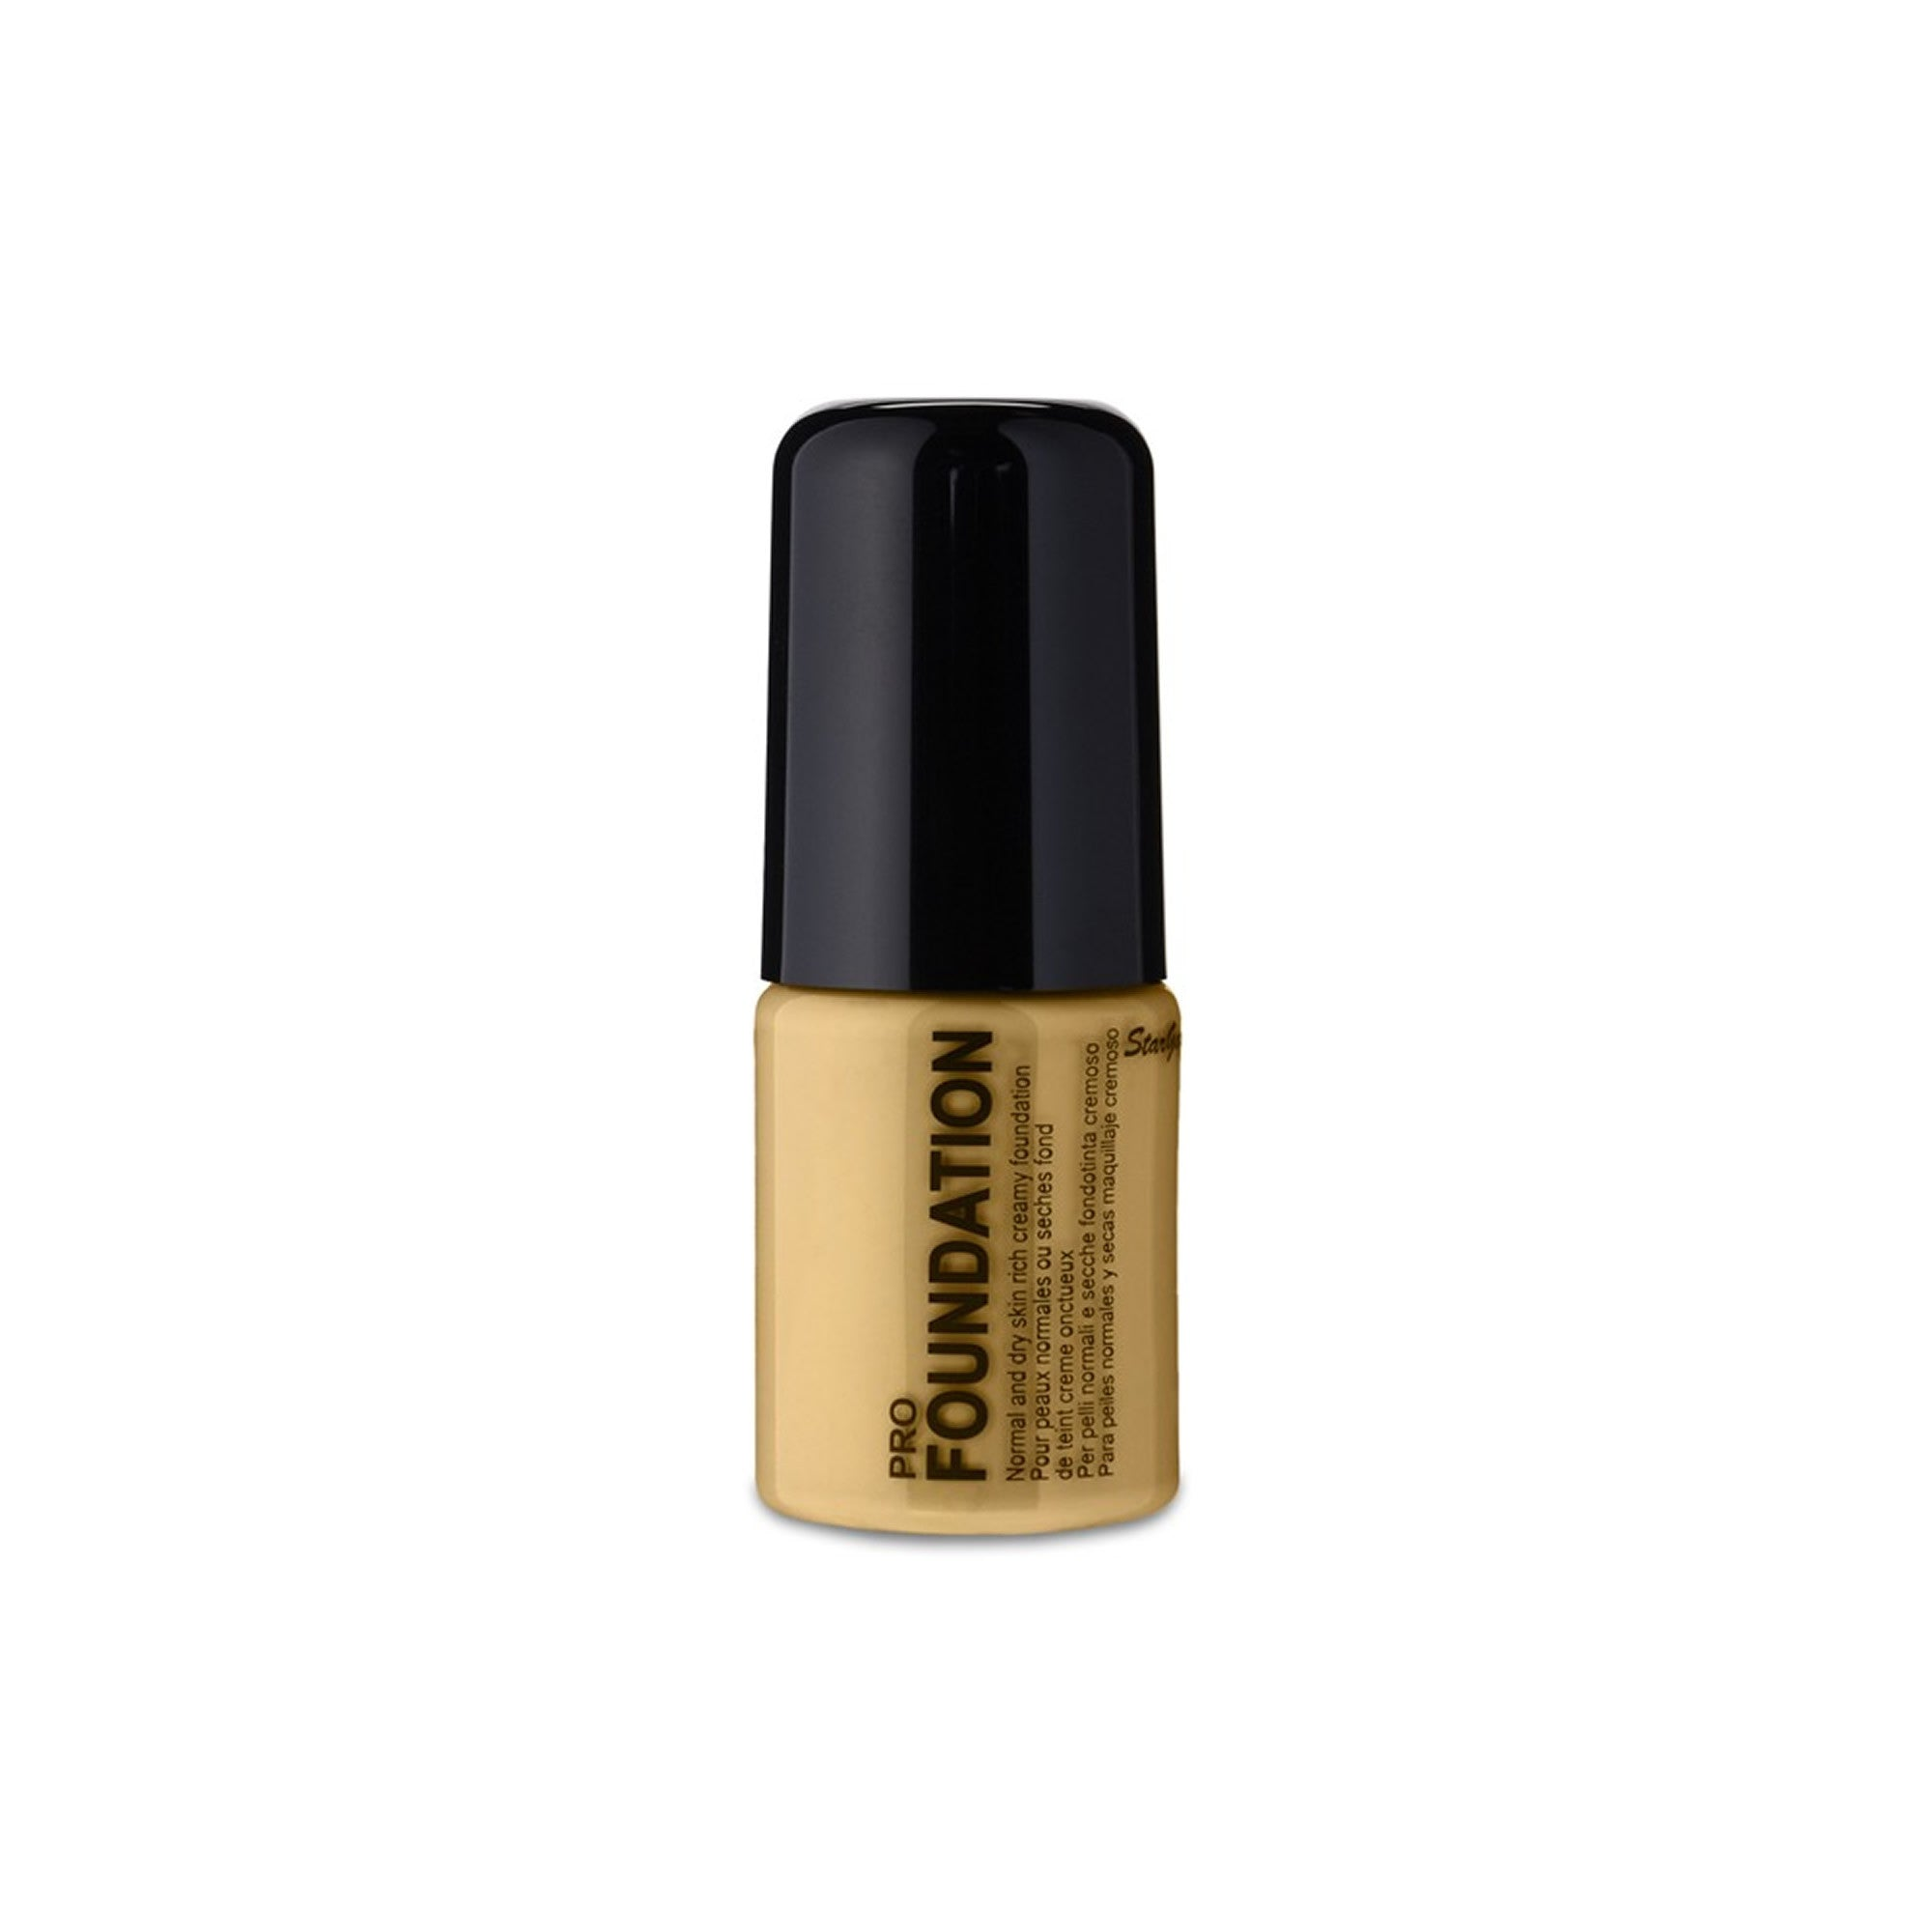 Stargazer Professional Liquid Foundation - Bronze - Red Carpet FX - Professional Makeup